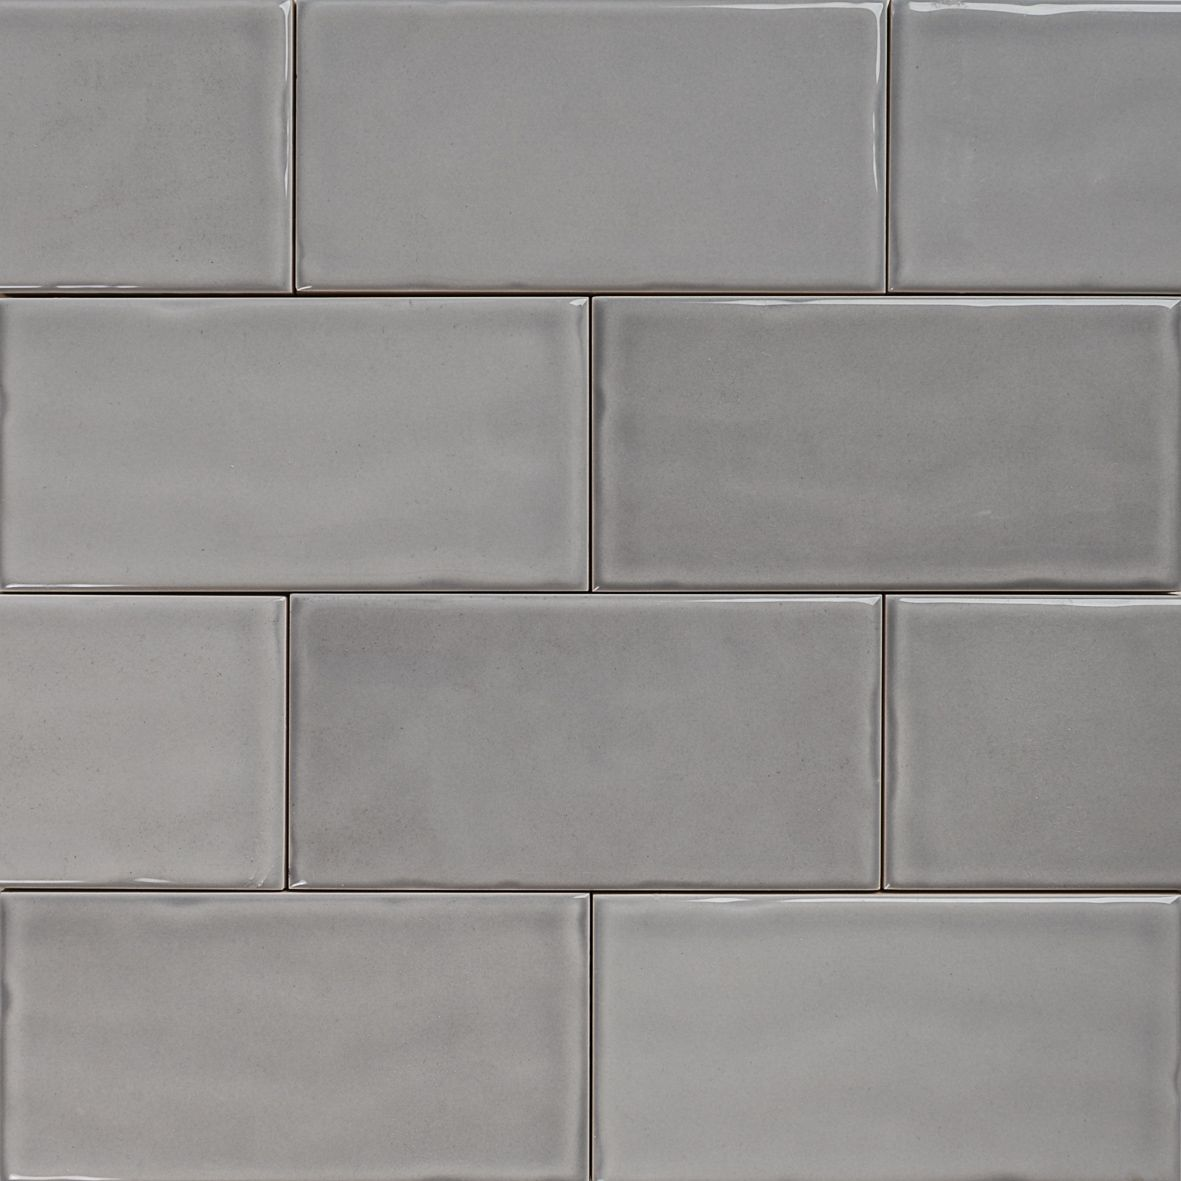 Tiles Design Grey Subway Pale Grey Gloss Wall Tiles 15075 Classico Textured